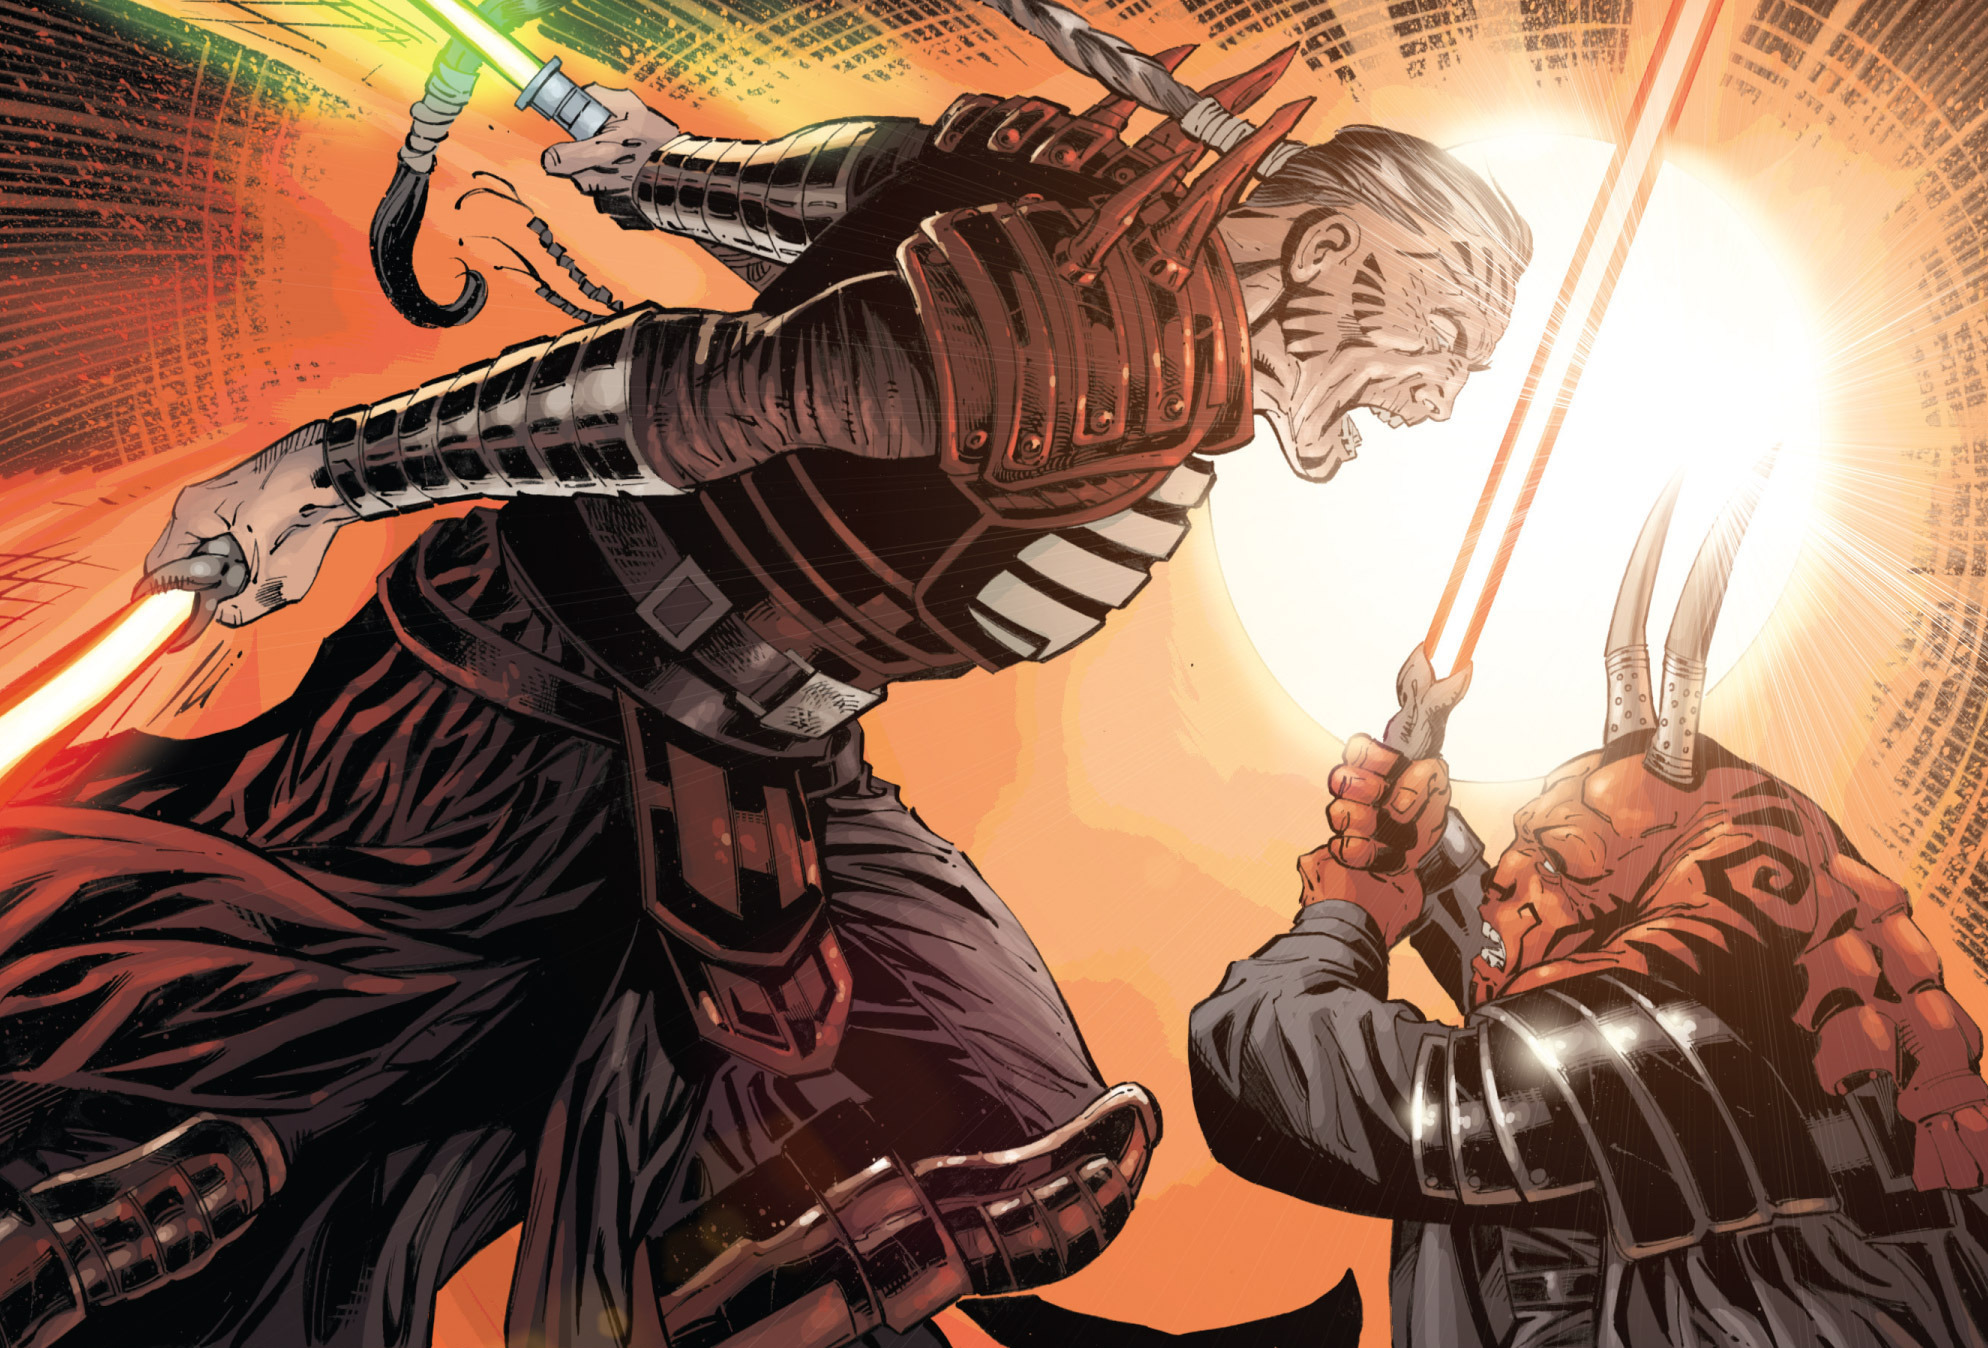 Darth Krayt vs Darth Bane Darth Krayt Defeating Darth